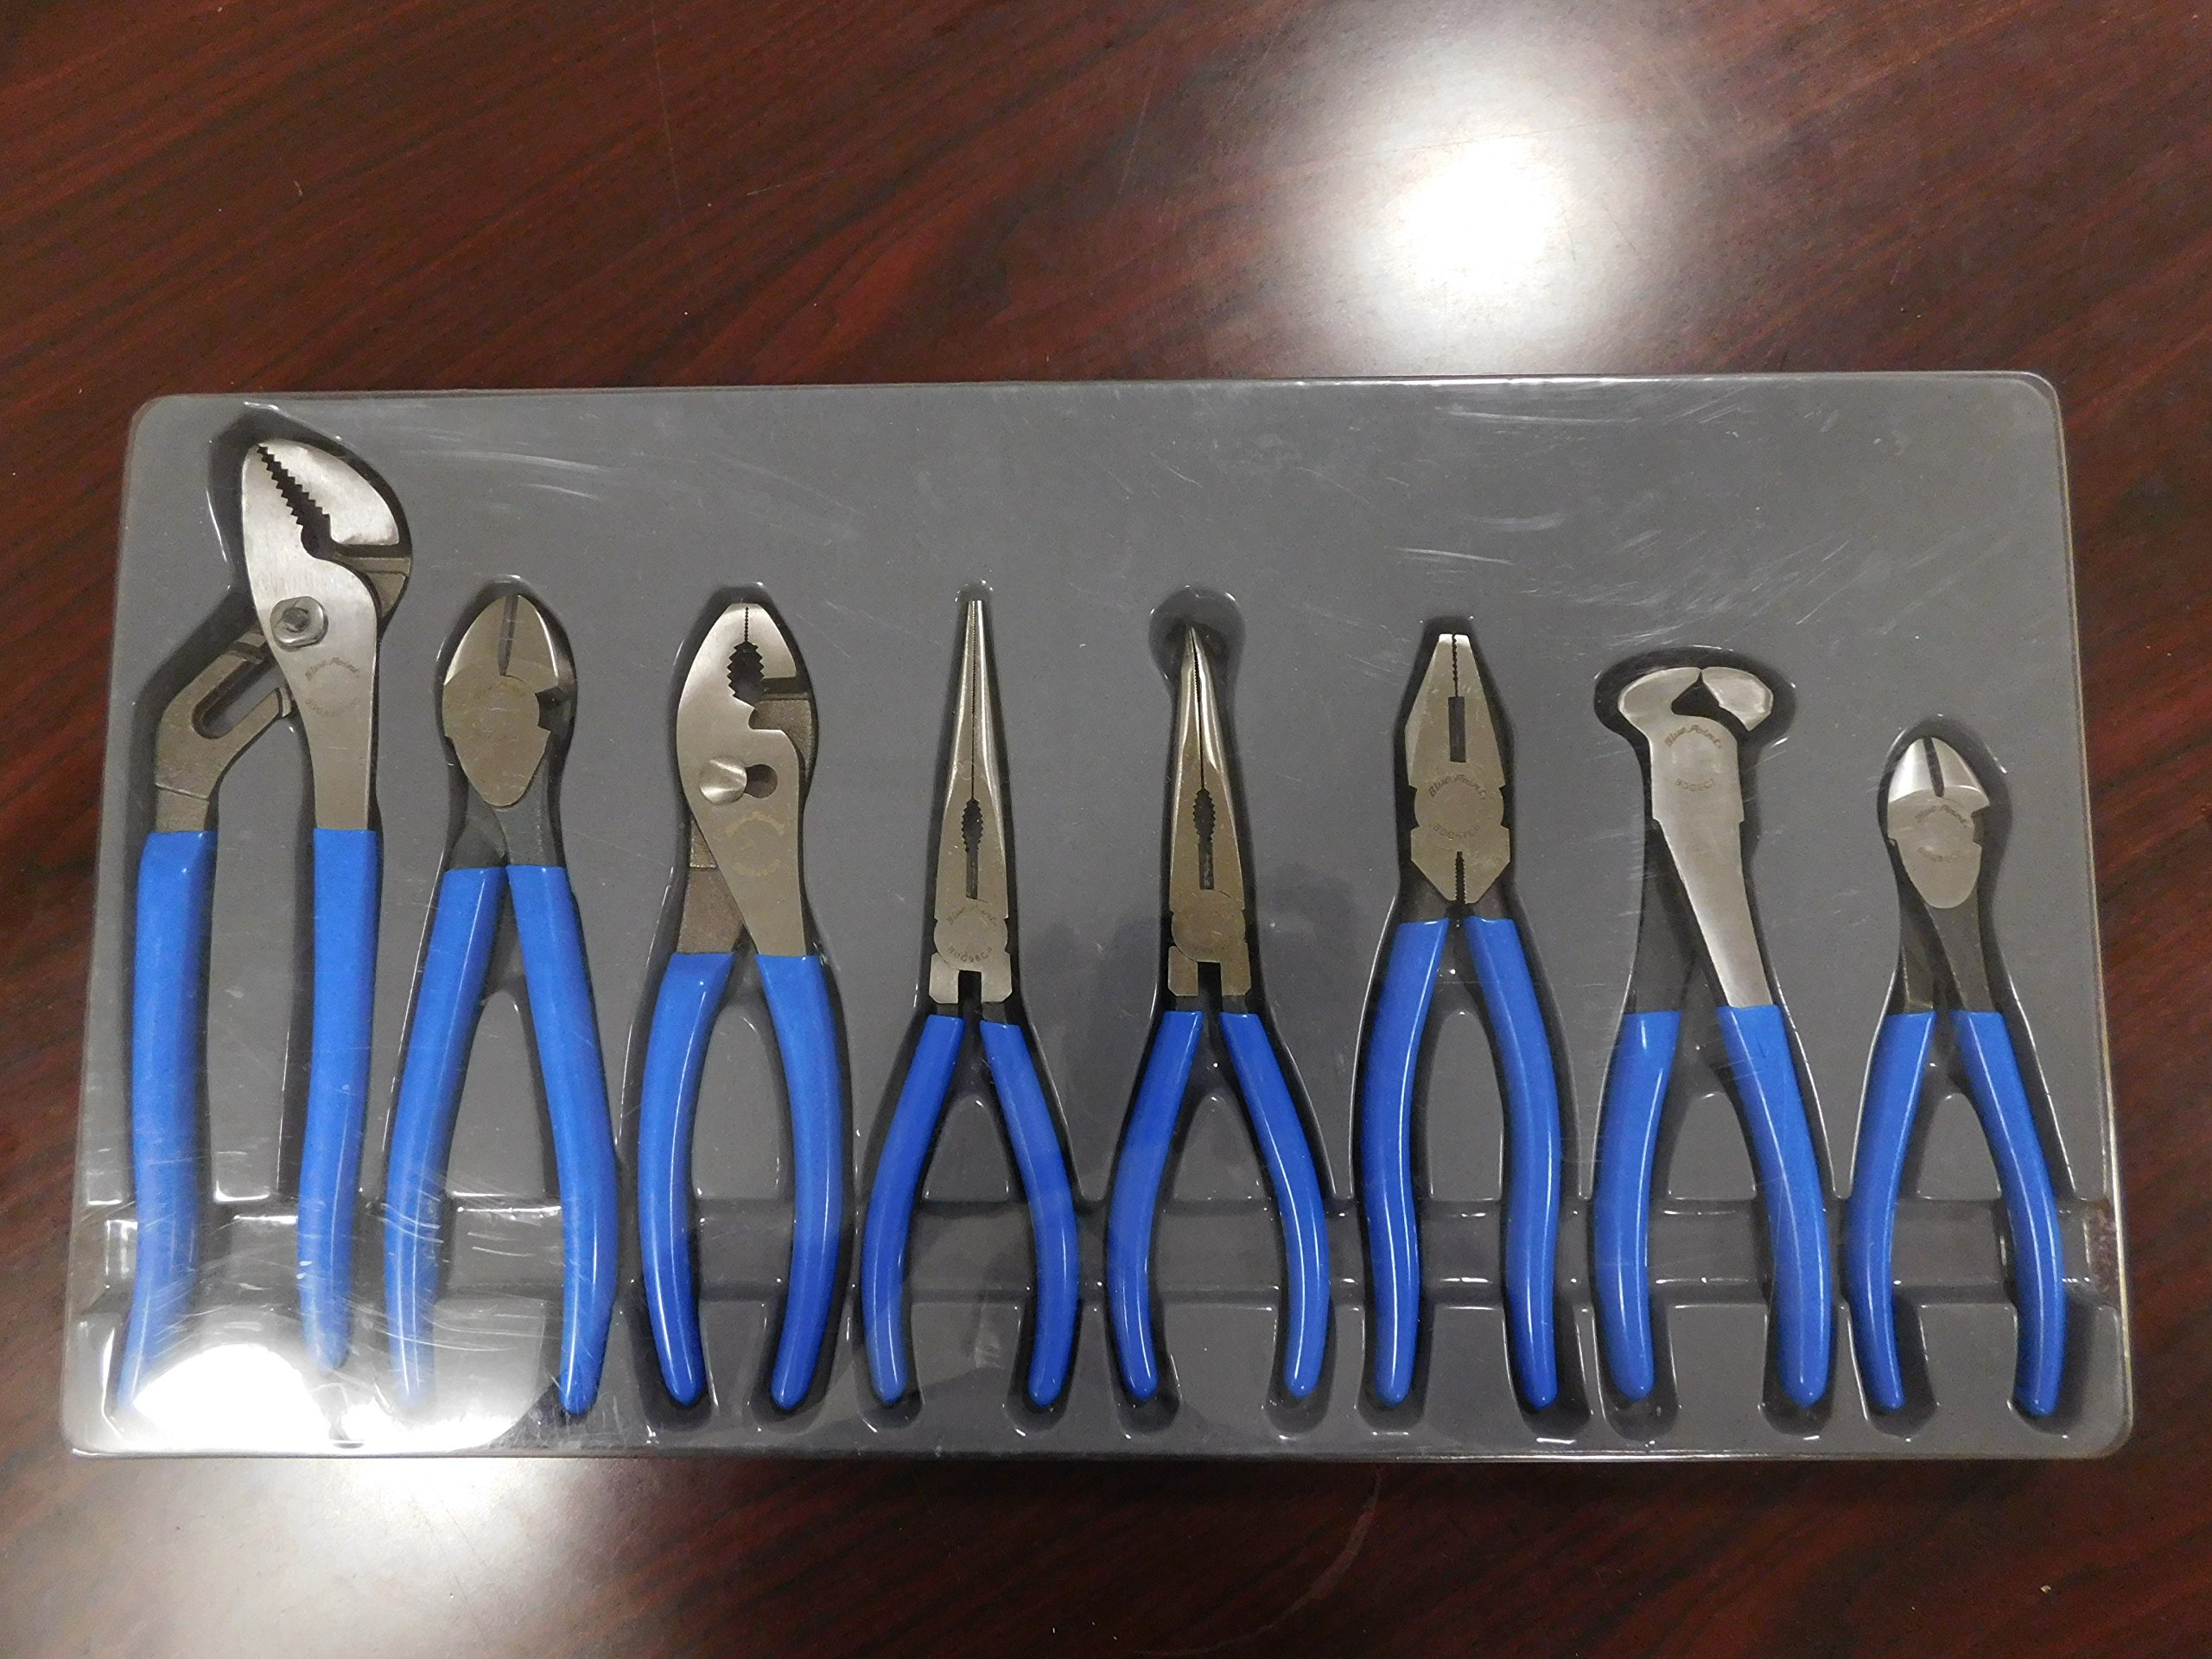 Blue-Point 8 Piece Pliers Set from Slip-Joint to Needle Nose, Part # BDGL800